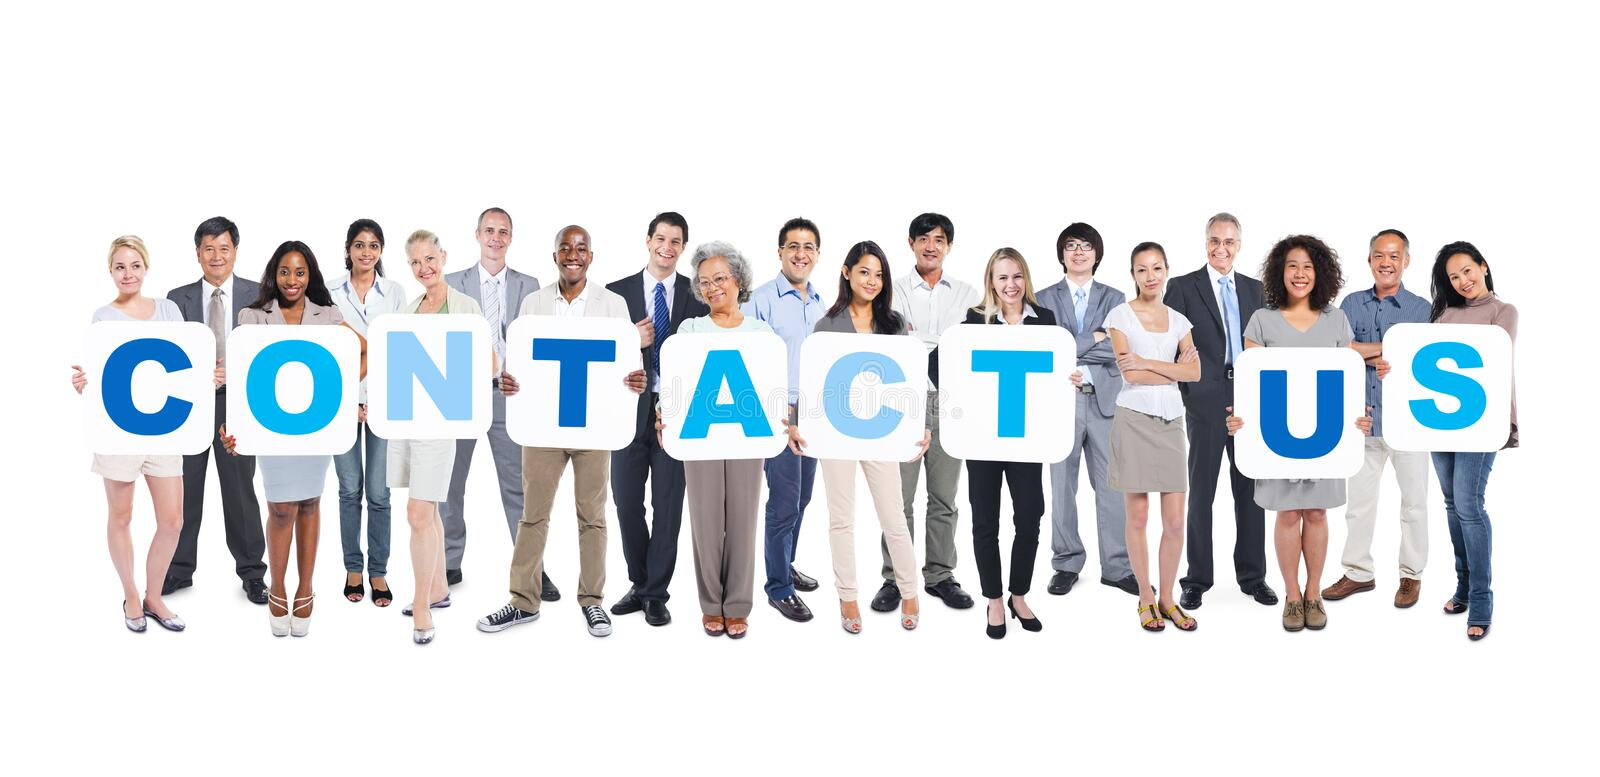 Business People Holding Placards Forming Contact Us. Group Of Multiethnic Group Of Business People Holding Placards Forming Contact Us royalty free stock images